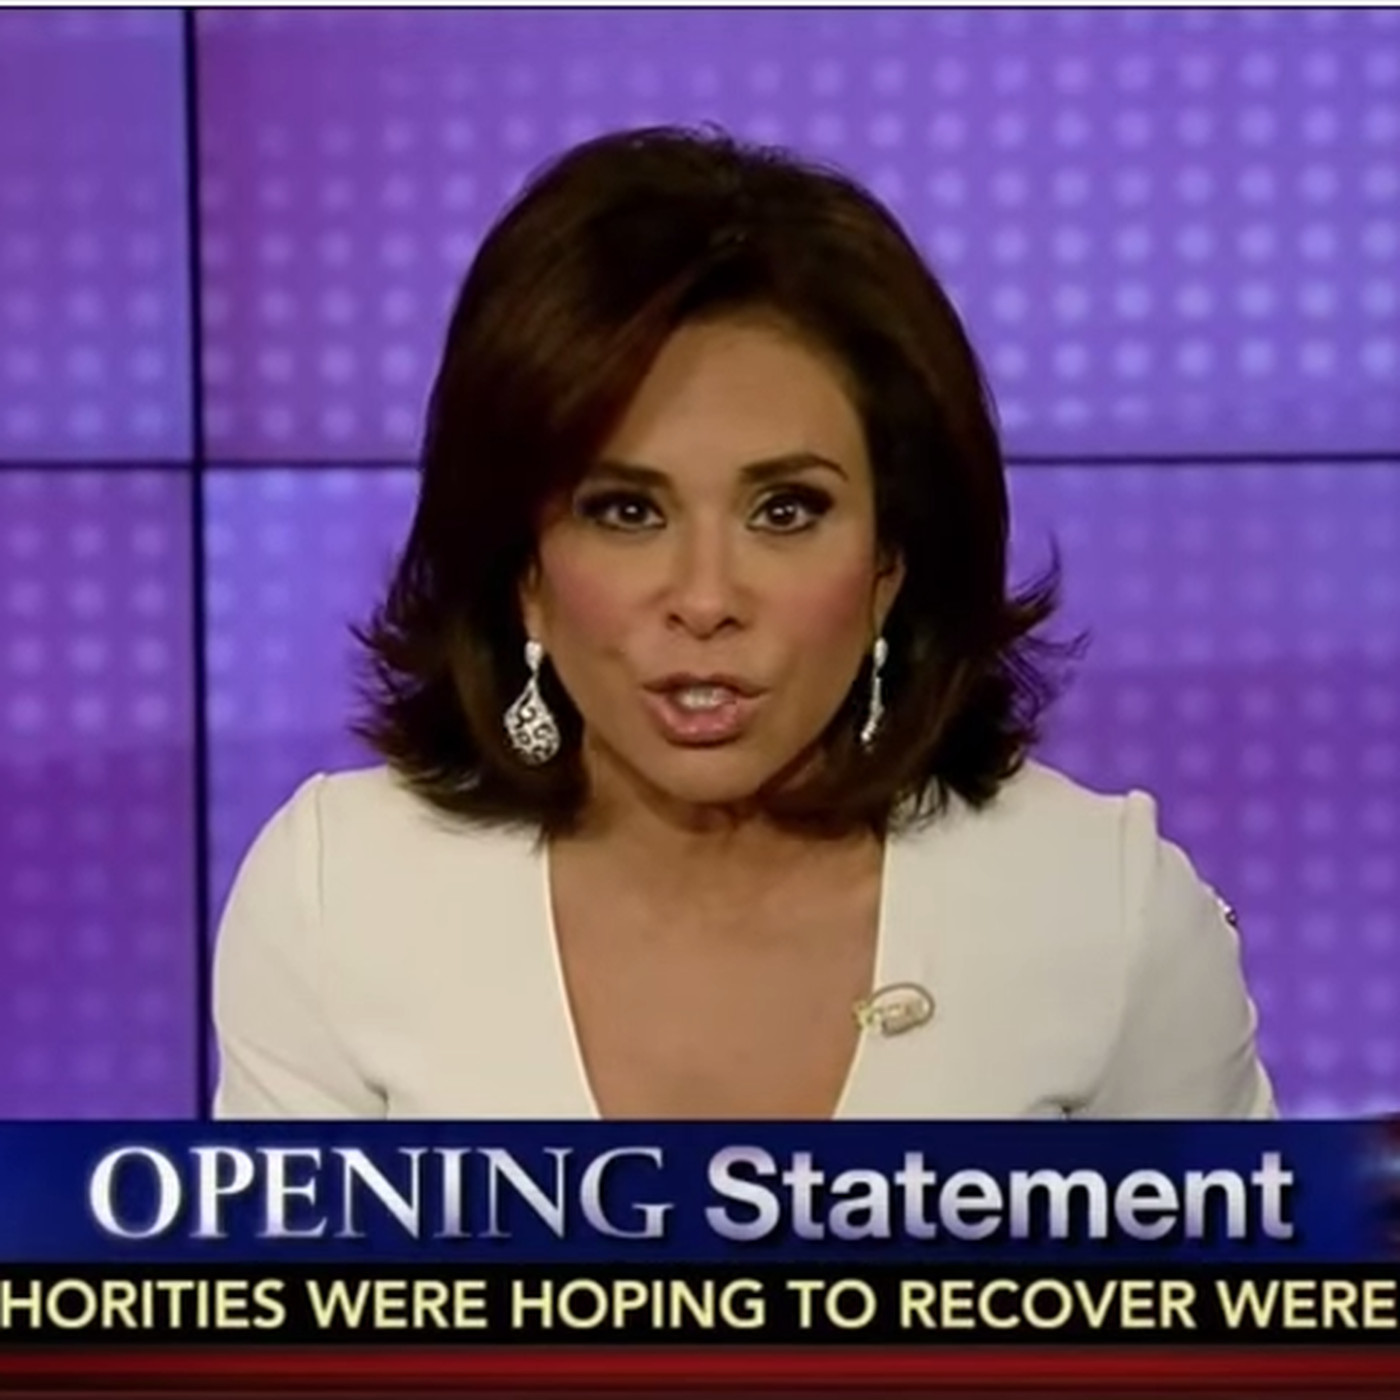 Fox News pulls Judge Jeanine show after Pirro's Islamophobic remarks - Vox